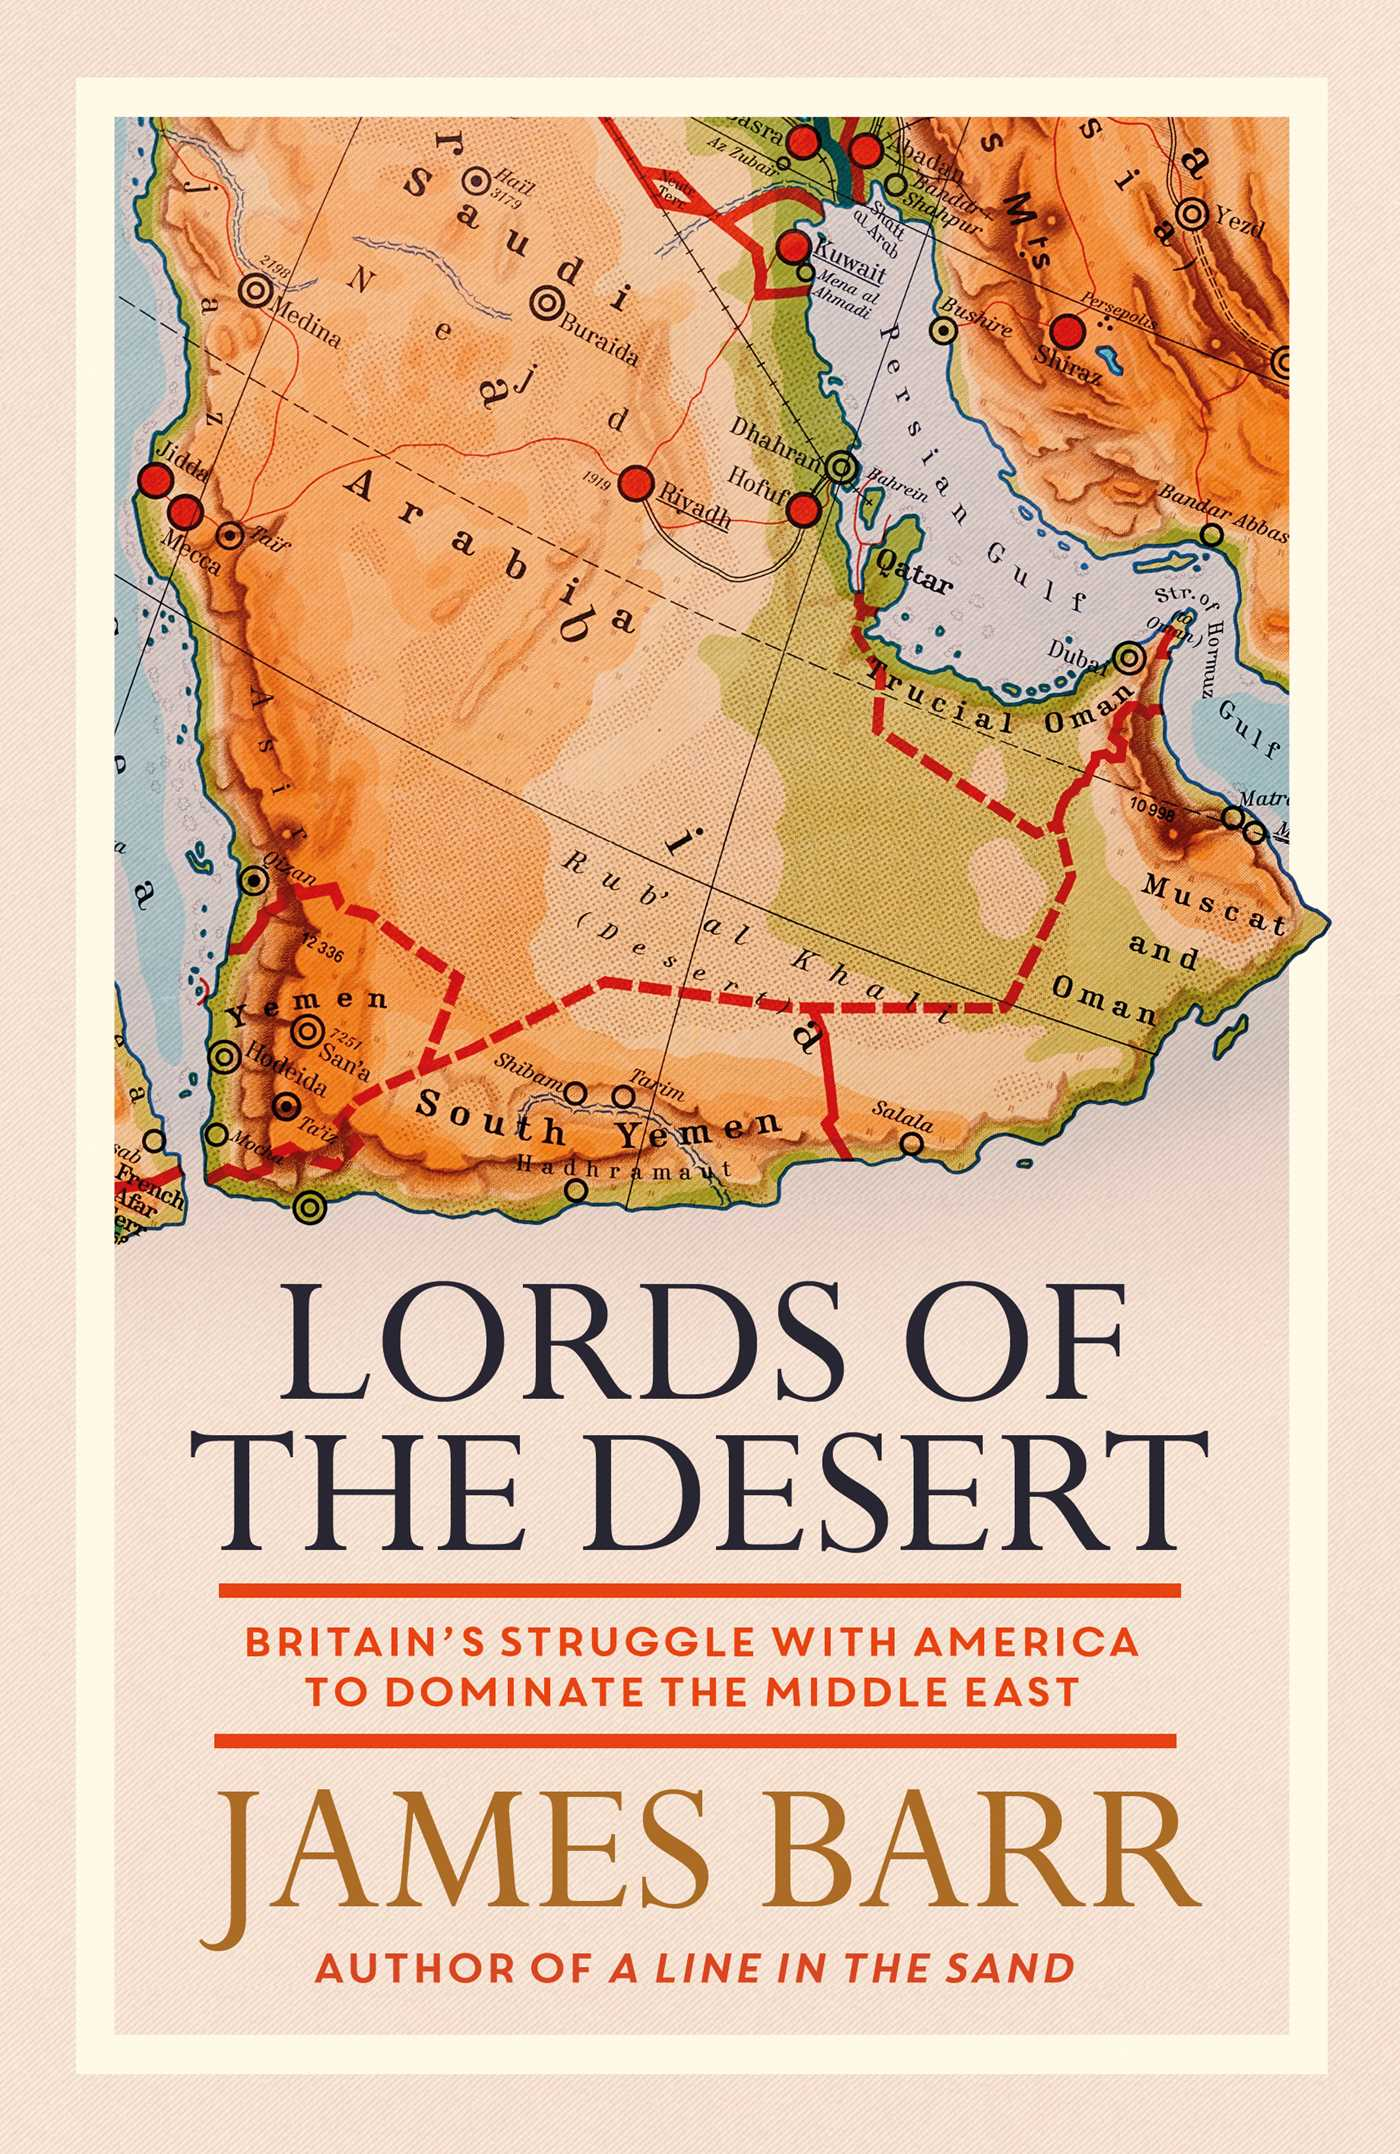 Lords of the desert 9781471139796 hr